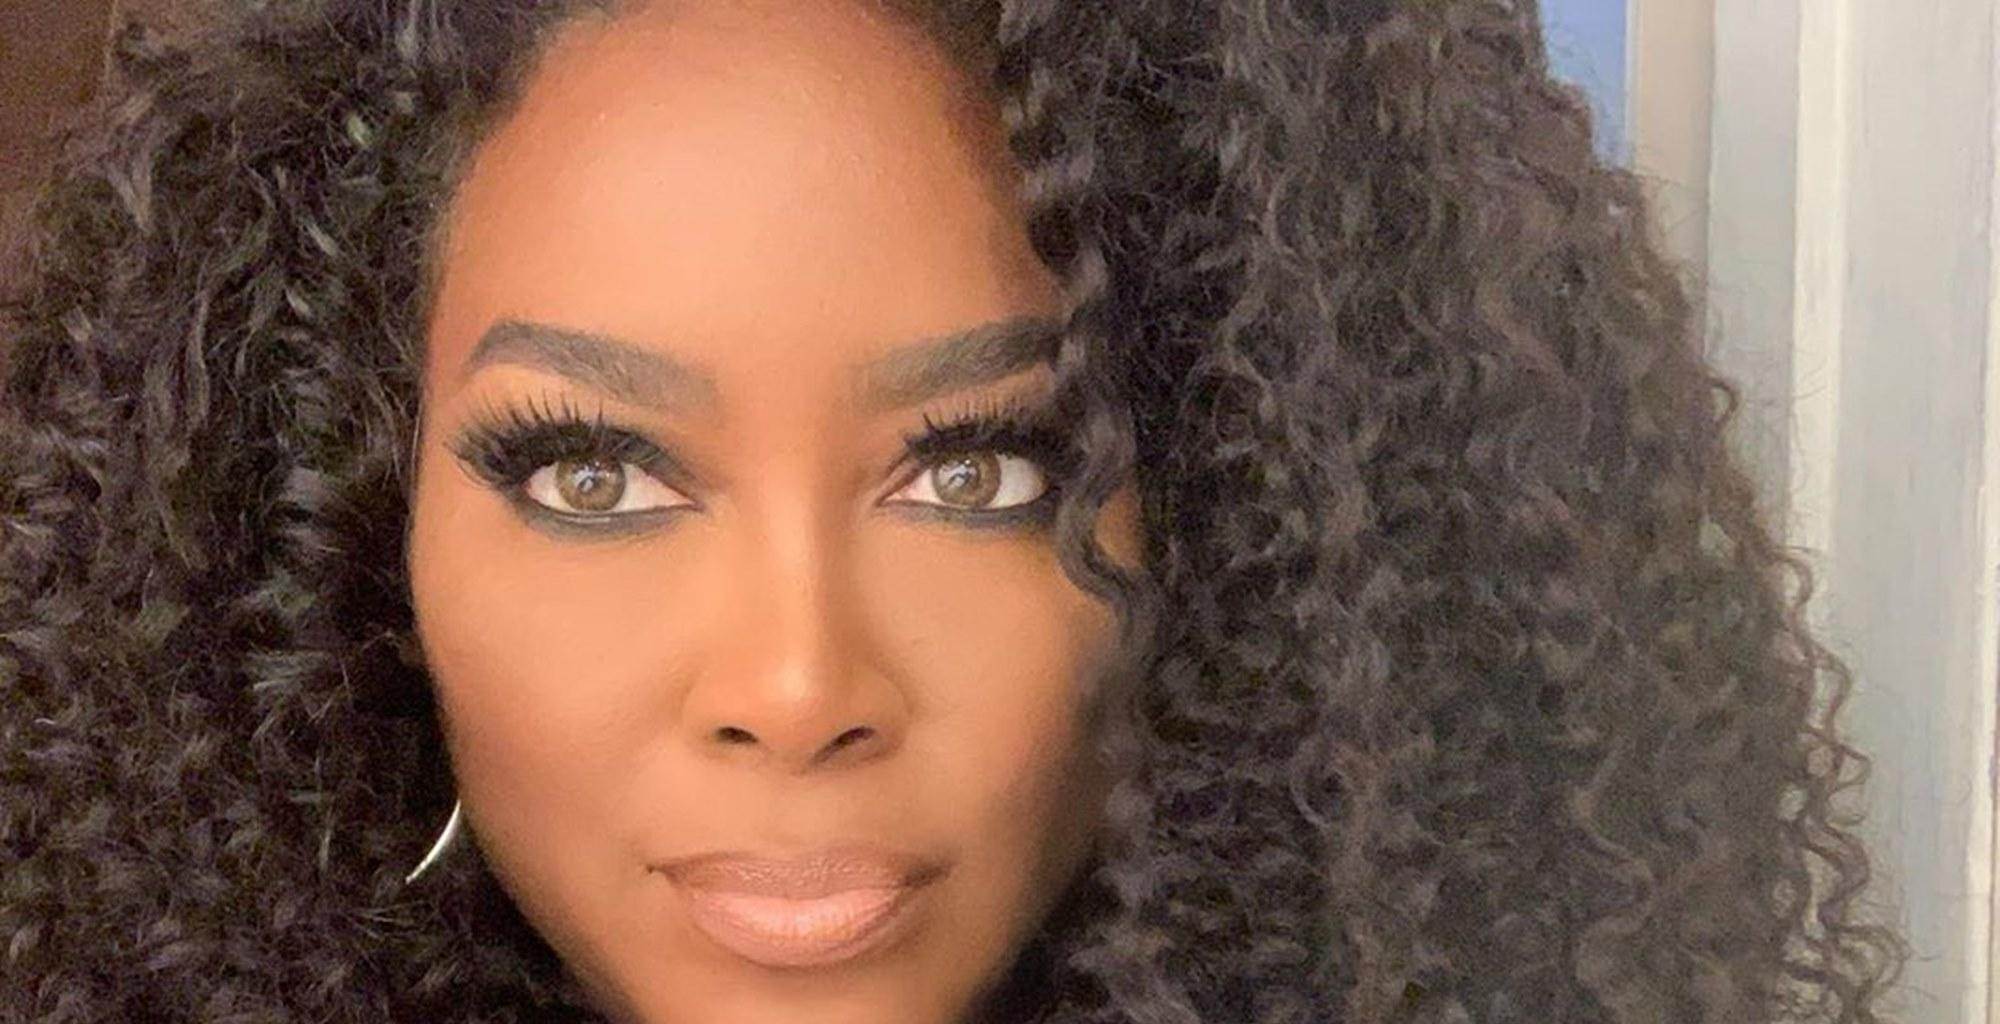 Kenya Moore's Daughter, Brooklyn Daly, Lands Her First Ad Campaign And She Looks Adorable In The Video